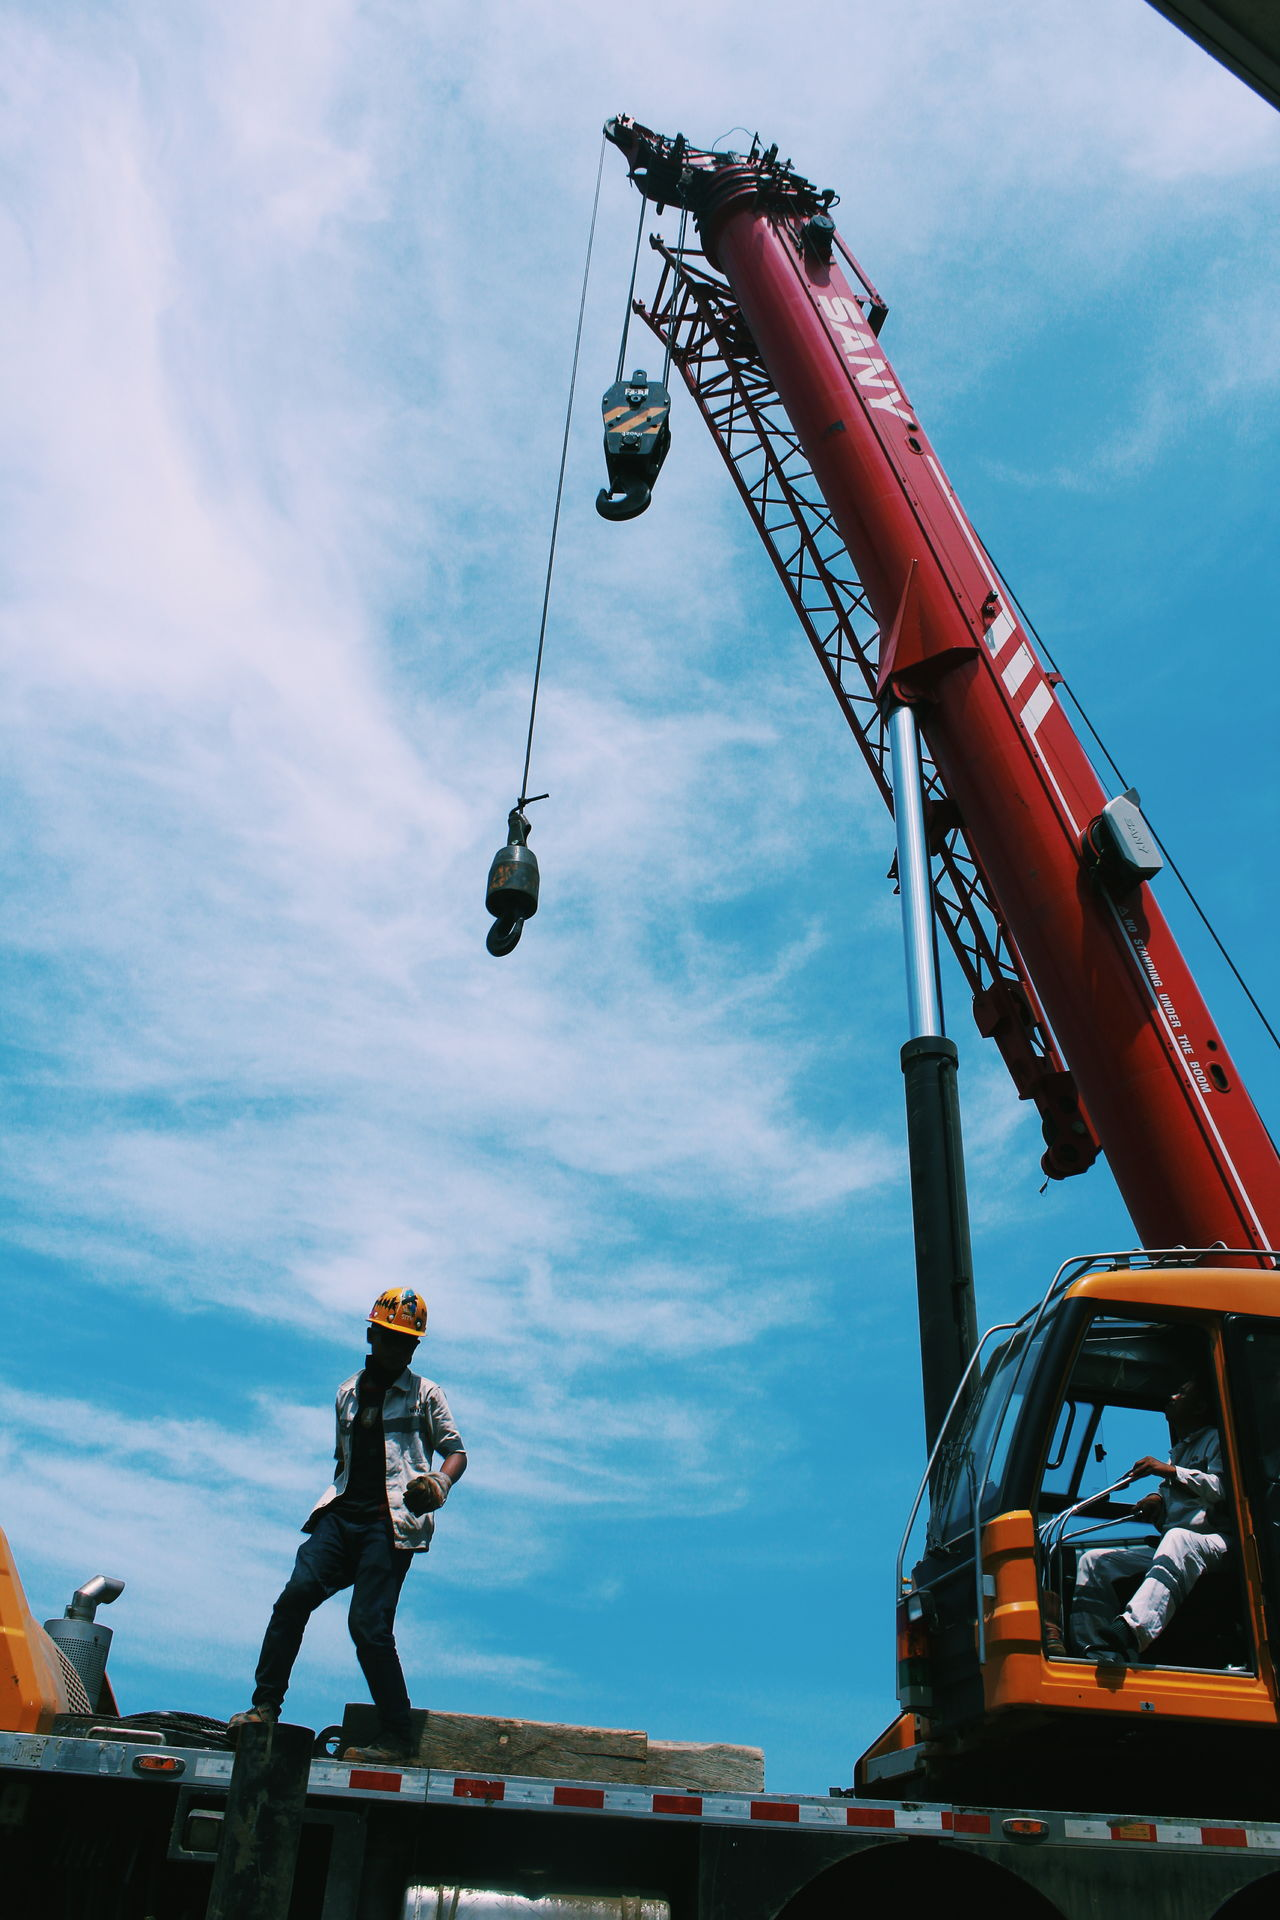 lets dance EyeEm Selects Crane - Construction Machinery EyeEmNewHere The Photojournalist - 2017 EyeEm Awards Morowali Sulawesi Tengah INDONESIA BYOPaper! Live For The Story Let's Go. Together. Sommergefühle Investing In Quality Of Life Workers Workers At Work Mining Industry Occupation Mix Yourself A Good Time